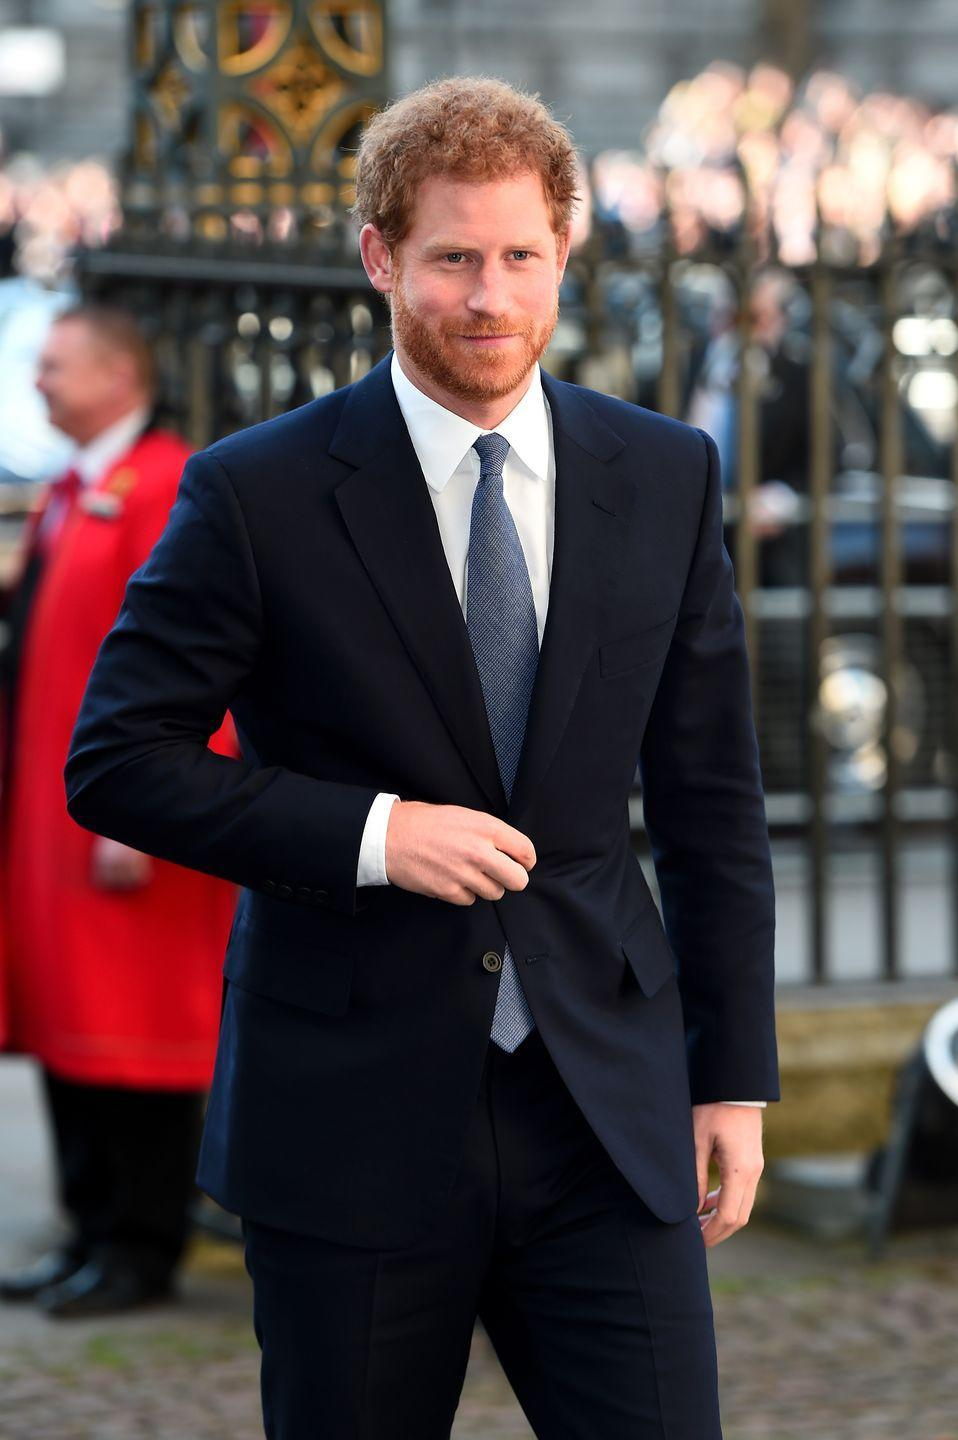 Prince Harry Reportedly Told Friends He 'Can't Believe His Life Has Been Turned Upside Down'